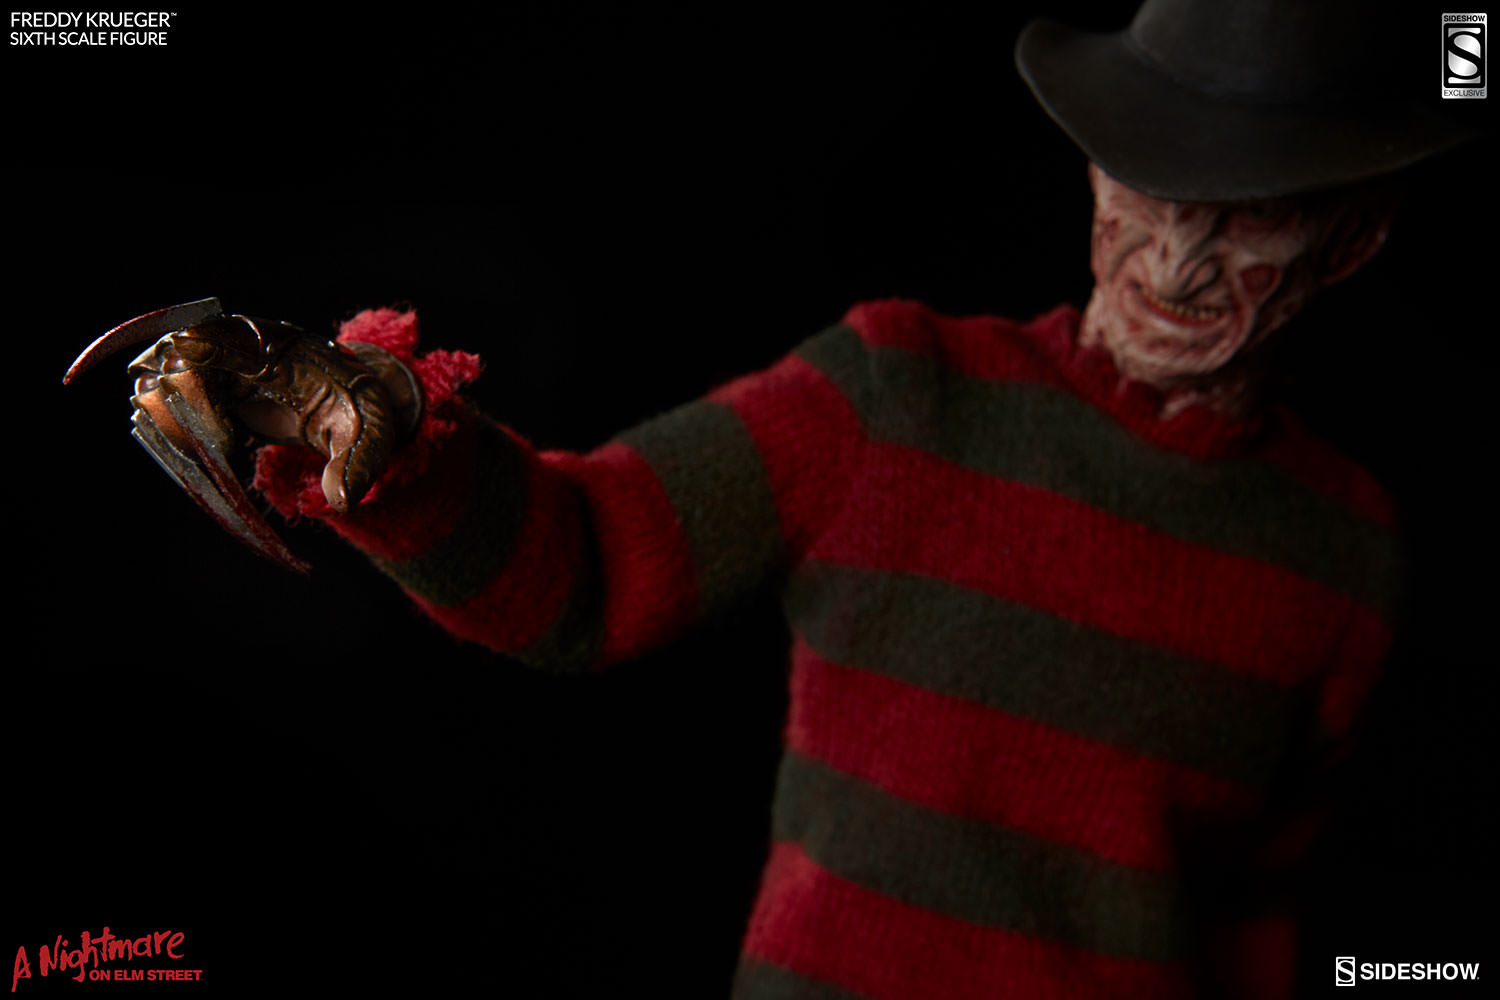 Sideshow A Nightmare On Elm Street Freddy Krueger Sixth Scale Figure Available Now